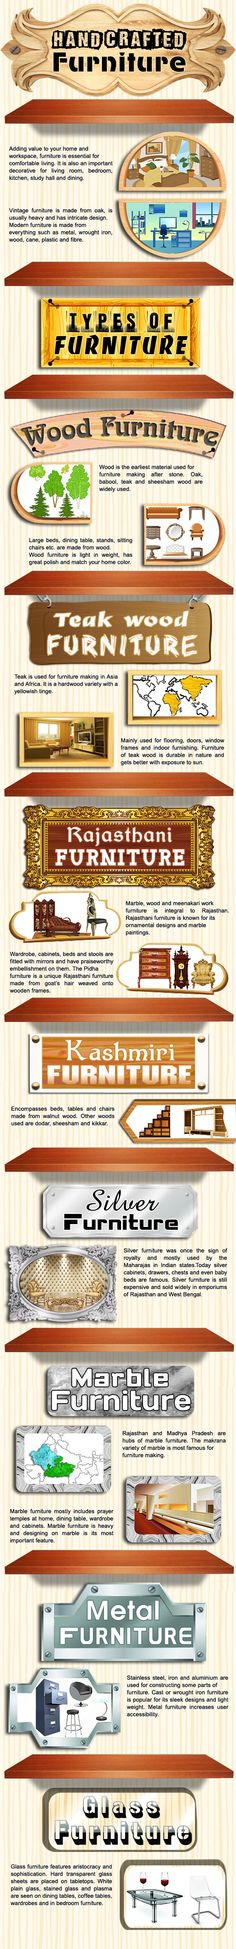 §130.43. Interior Design (12)  The student evaluates the role of furniture in interior design for residential and nonresidential settings. The student is expected to:  (A)  describe characteristics of period styles